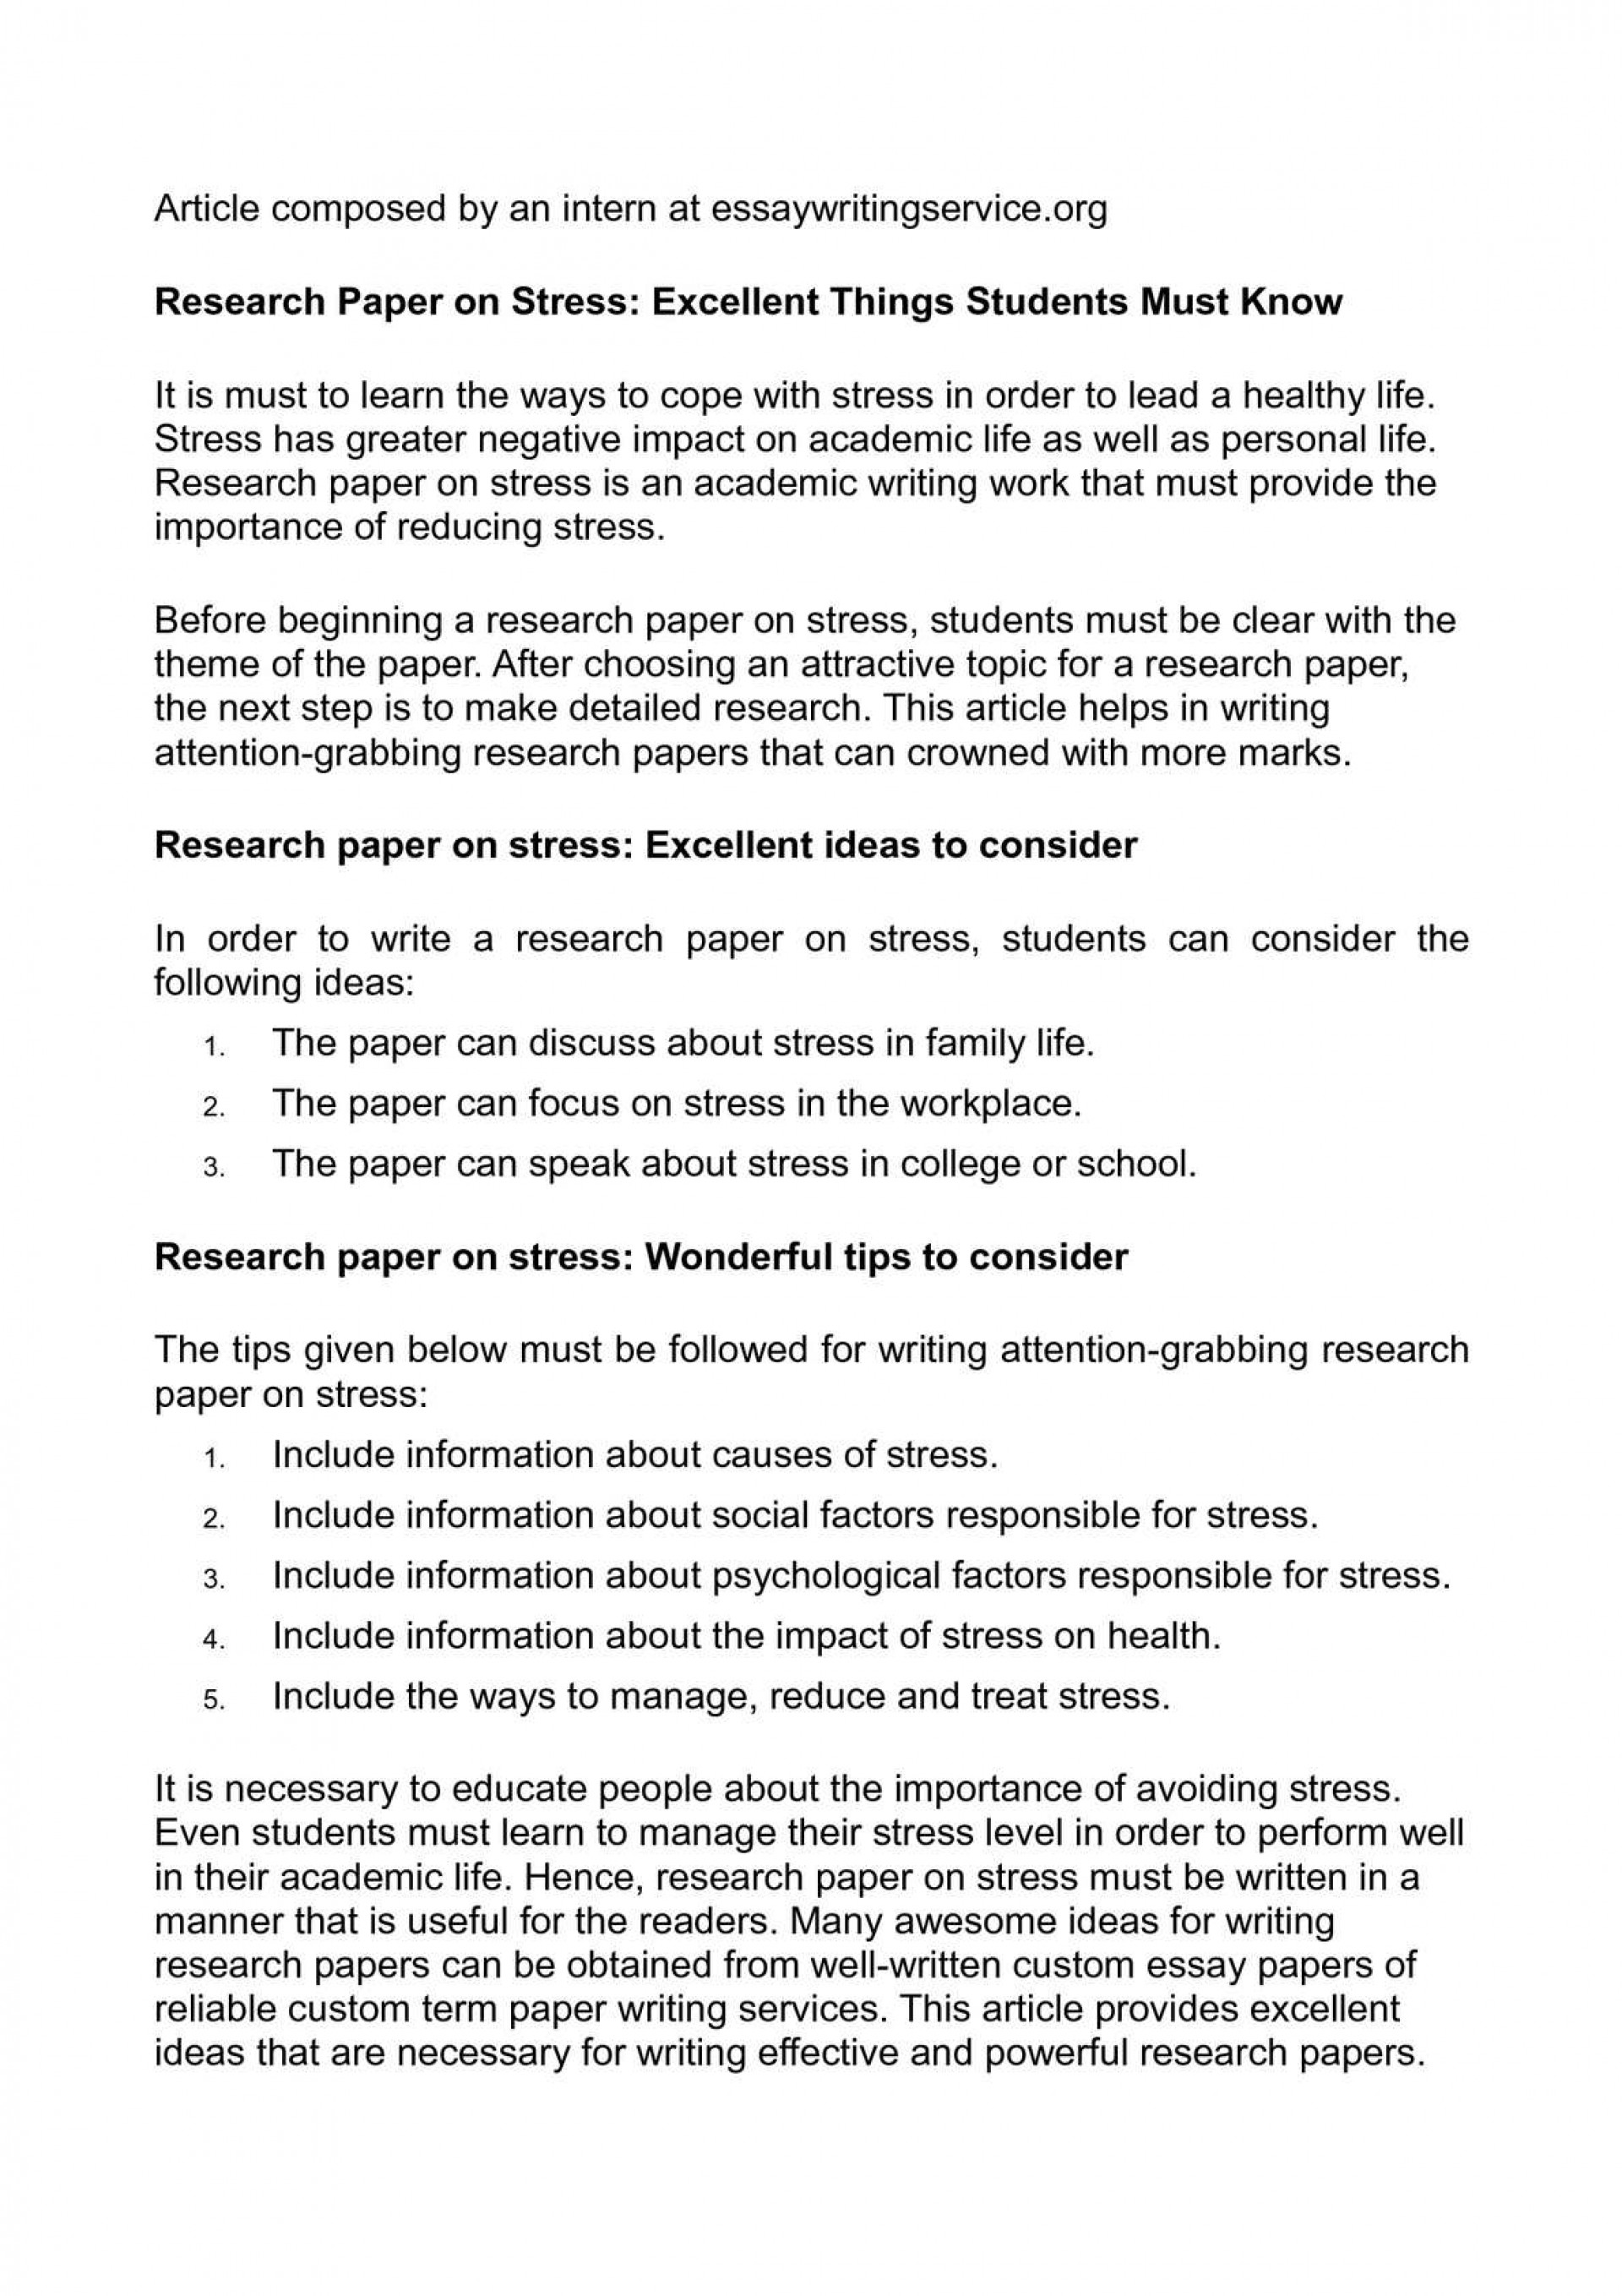 020 Ideas To Write Research Paper On Dreaded A Good 1920